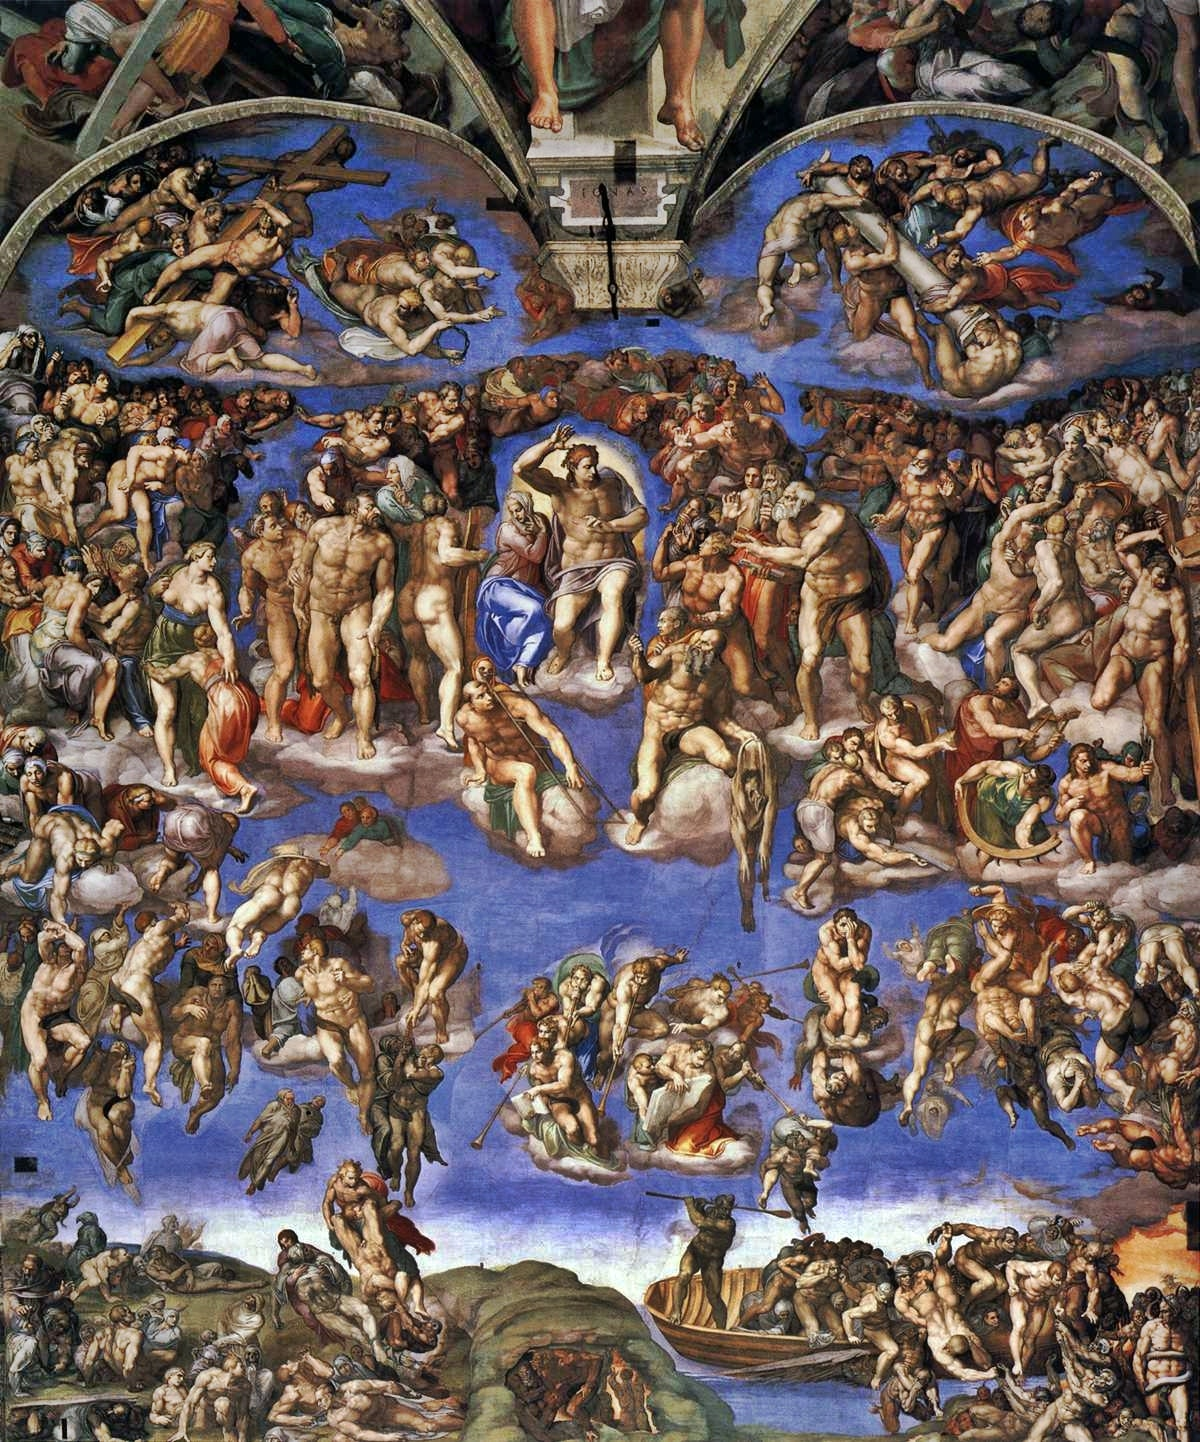 The third heaven, the seventh heaven, the circles of hell: a selection of sites